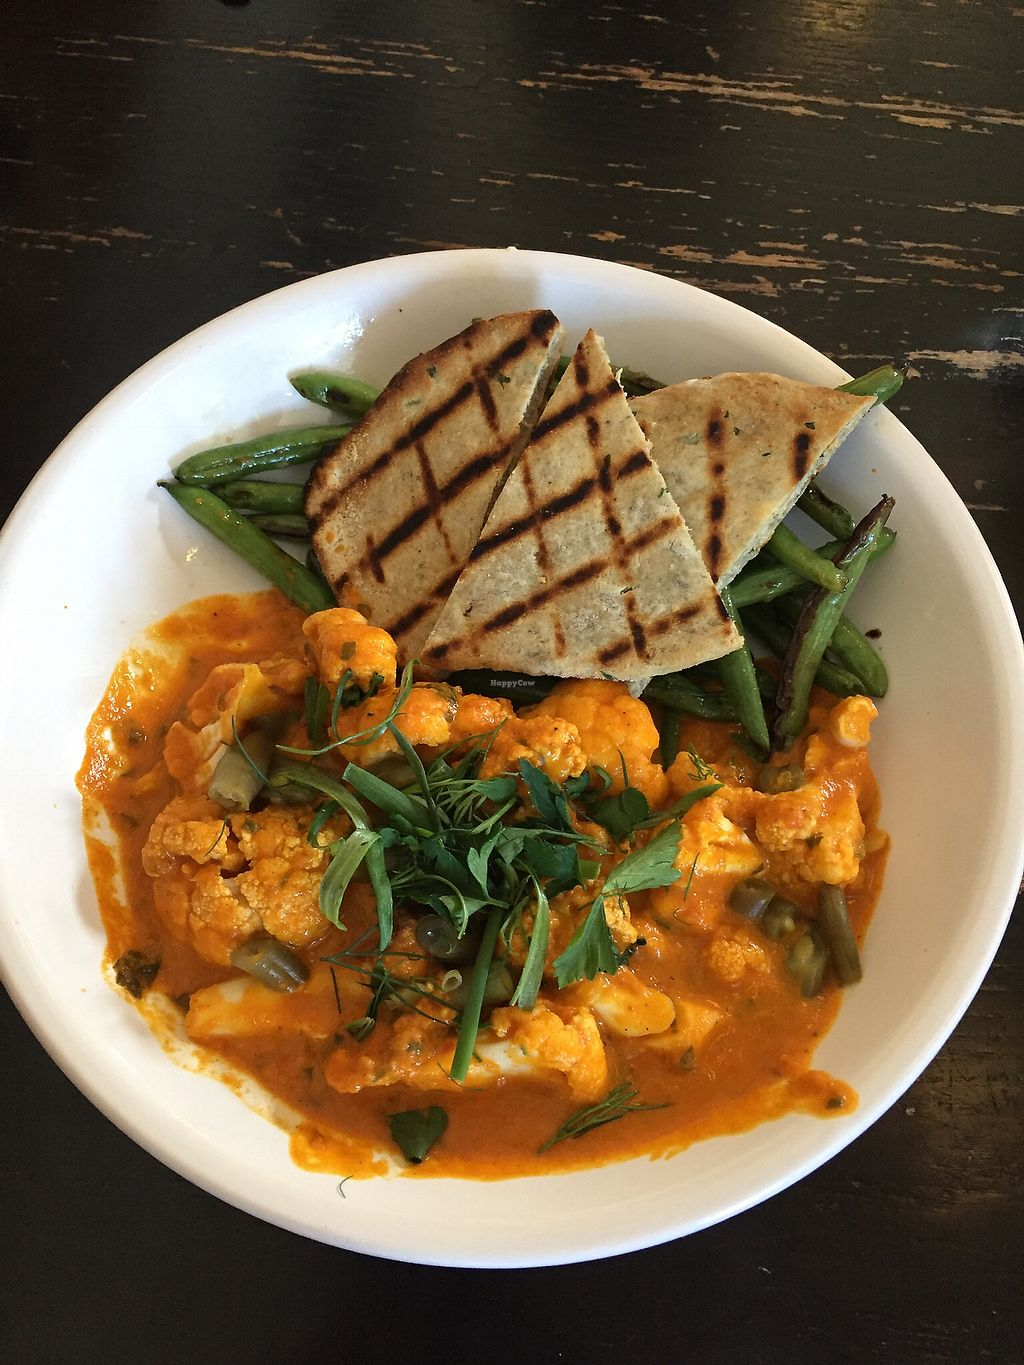 "Photo of Merchants Pub and Plate  by <a href=""/members/profile/alexis17"">alexis17</a> <br/>Cauliflower tika masala modified to be vegan (with green beans substituted out for rice) <br/> February 27, 2018  - <a href='/contact/abuse/image/104555/364301'>Report</a>"